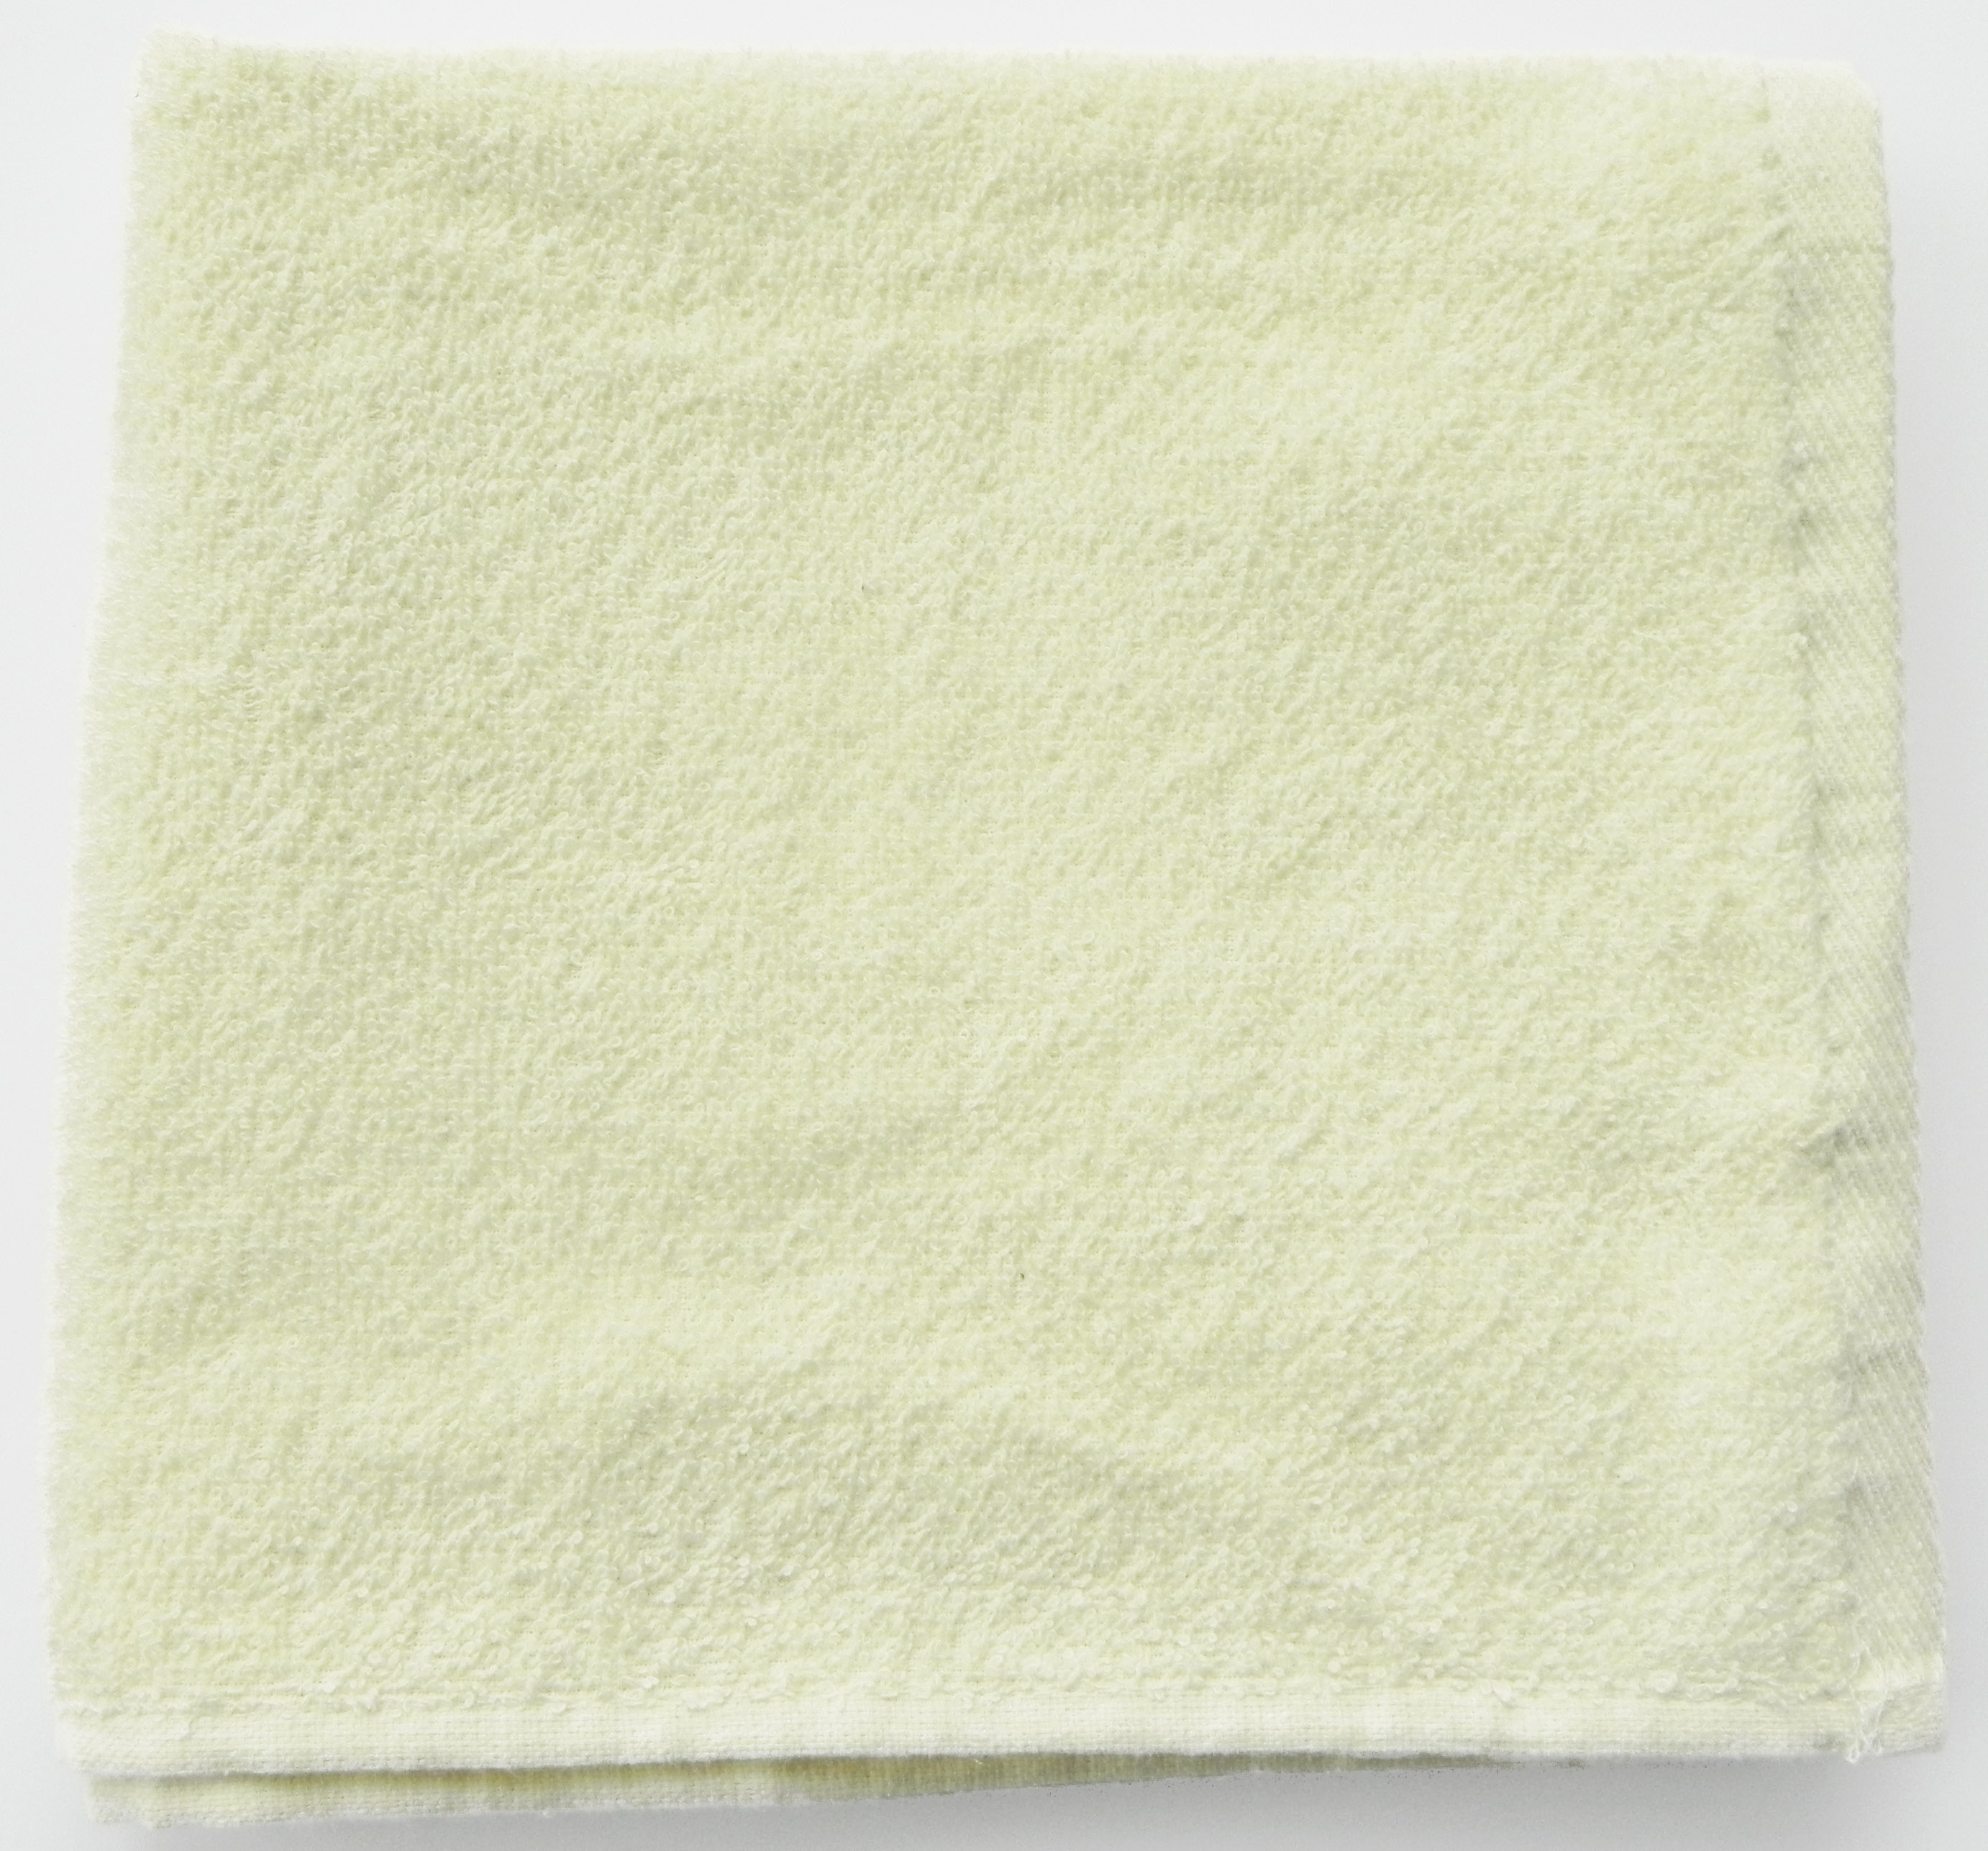 Terry Cloth, 380 g/m², 200 cm, ivory